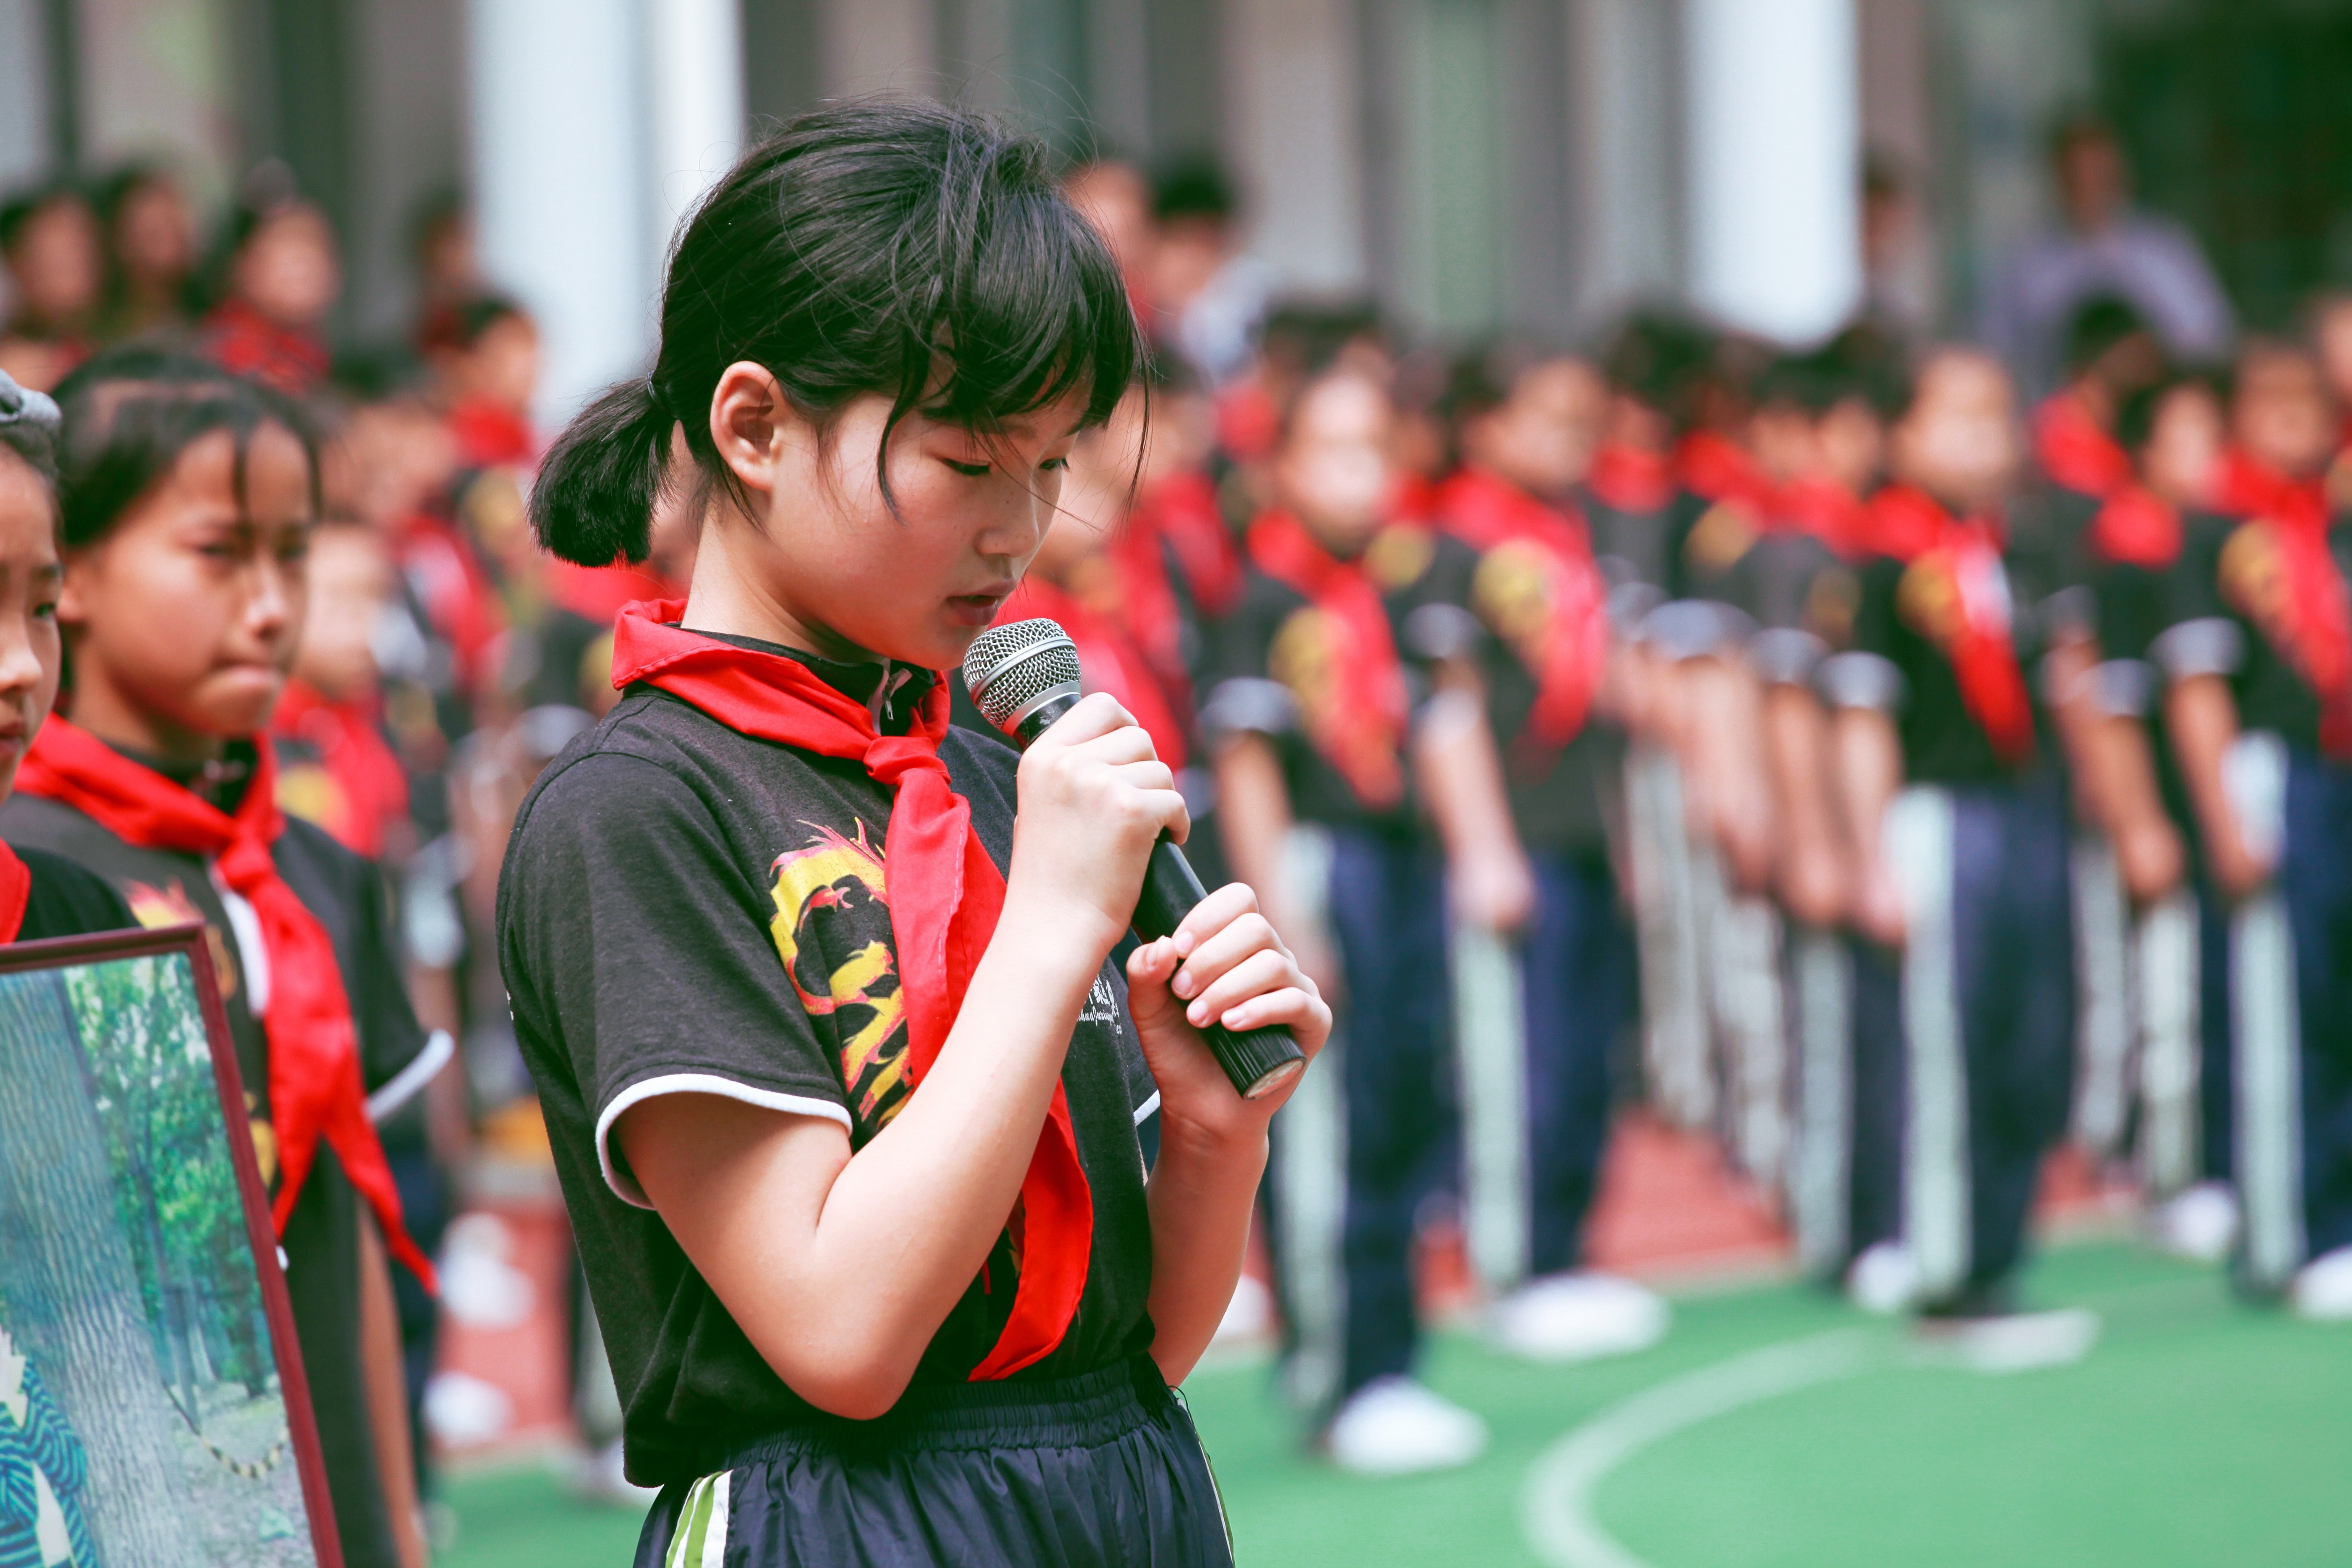 Woman Wearing Red Handkerchief on Neck Holding Black Microphone, Blur, People, Students, Student, HQ Photo